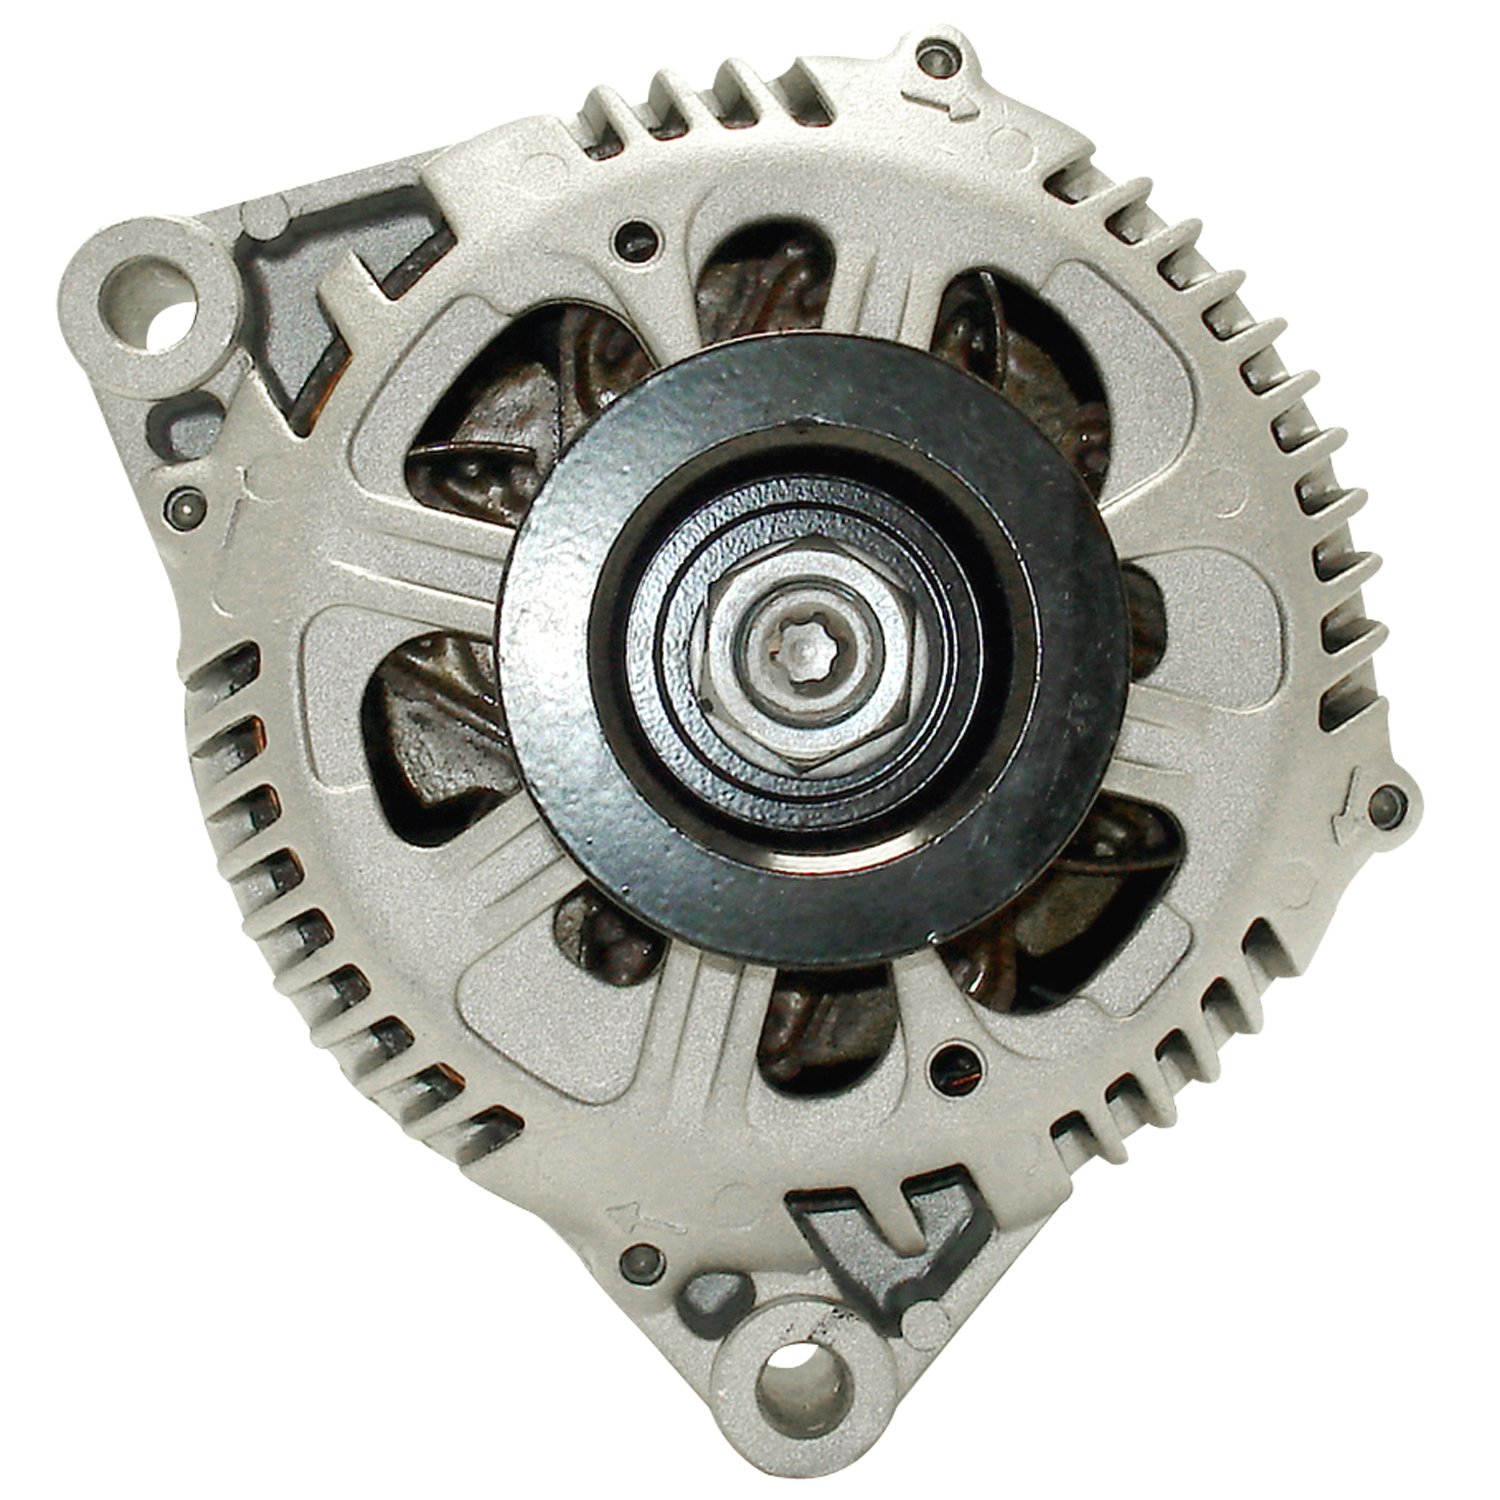 Amazon.com: ACDelco 334-1280 Professional Alternator, Remanufactured: Automotive